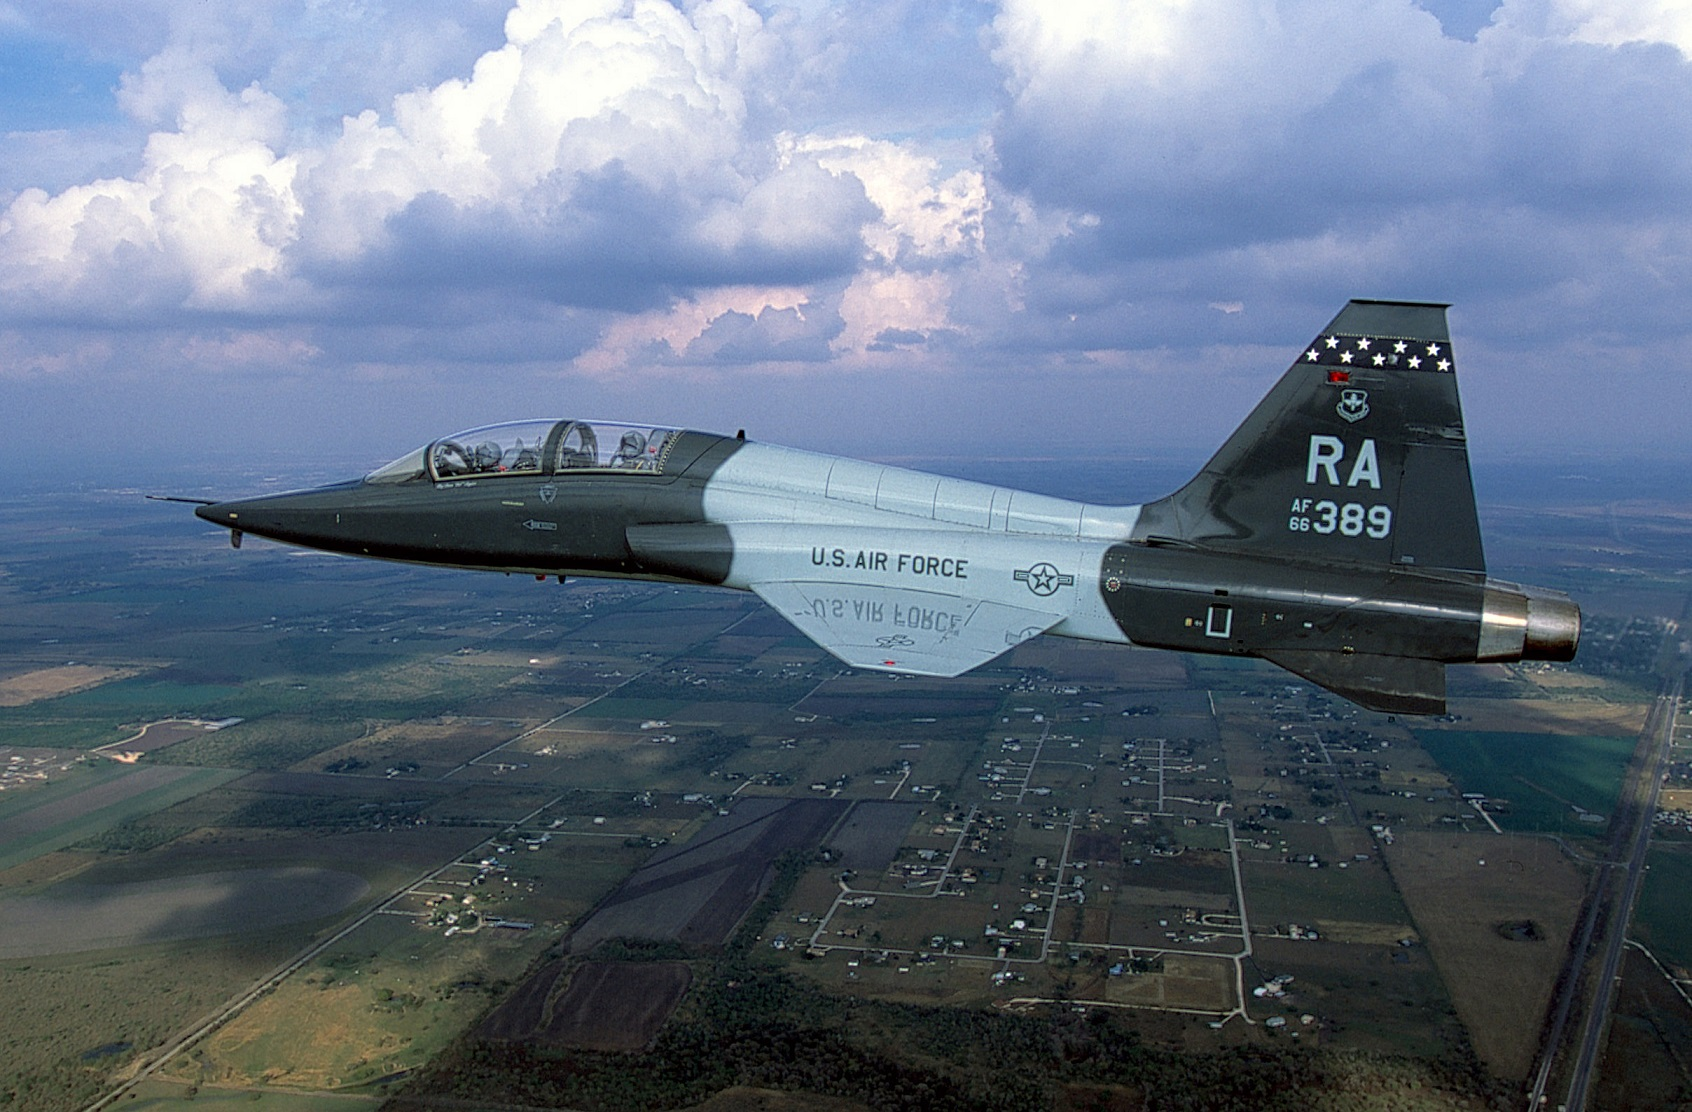 Air-to-air left side view of an USAF T-38 Talon aircraft from 560th Flying Training Squadron, Randolph AFB, TX flying over the Texas countryside.